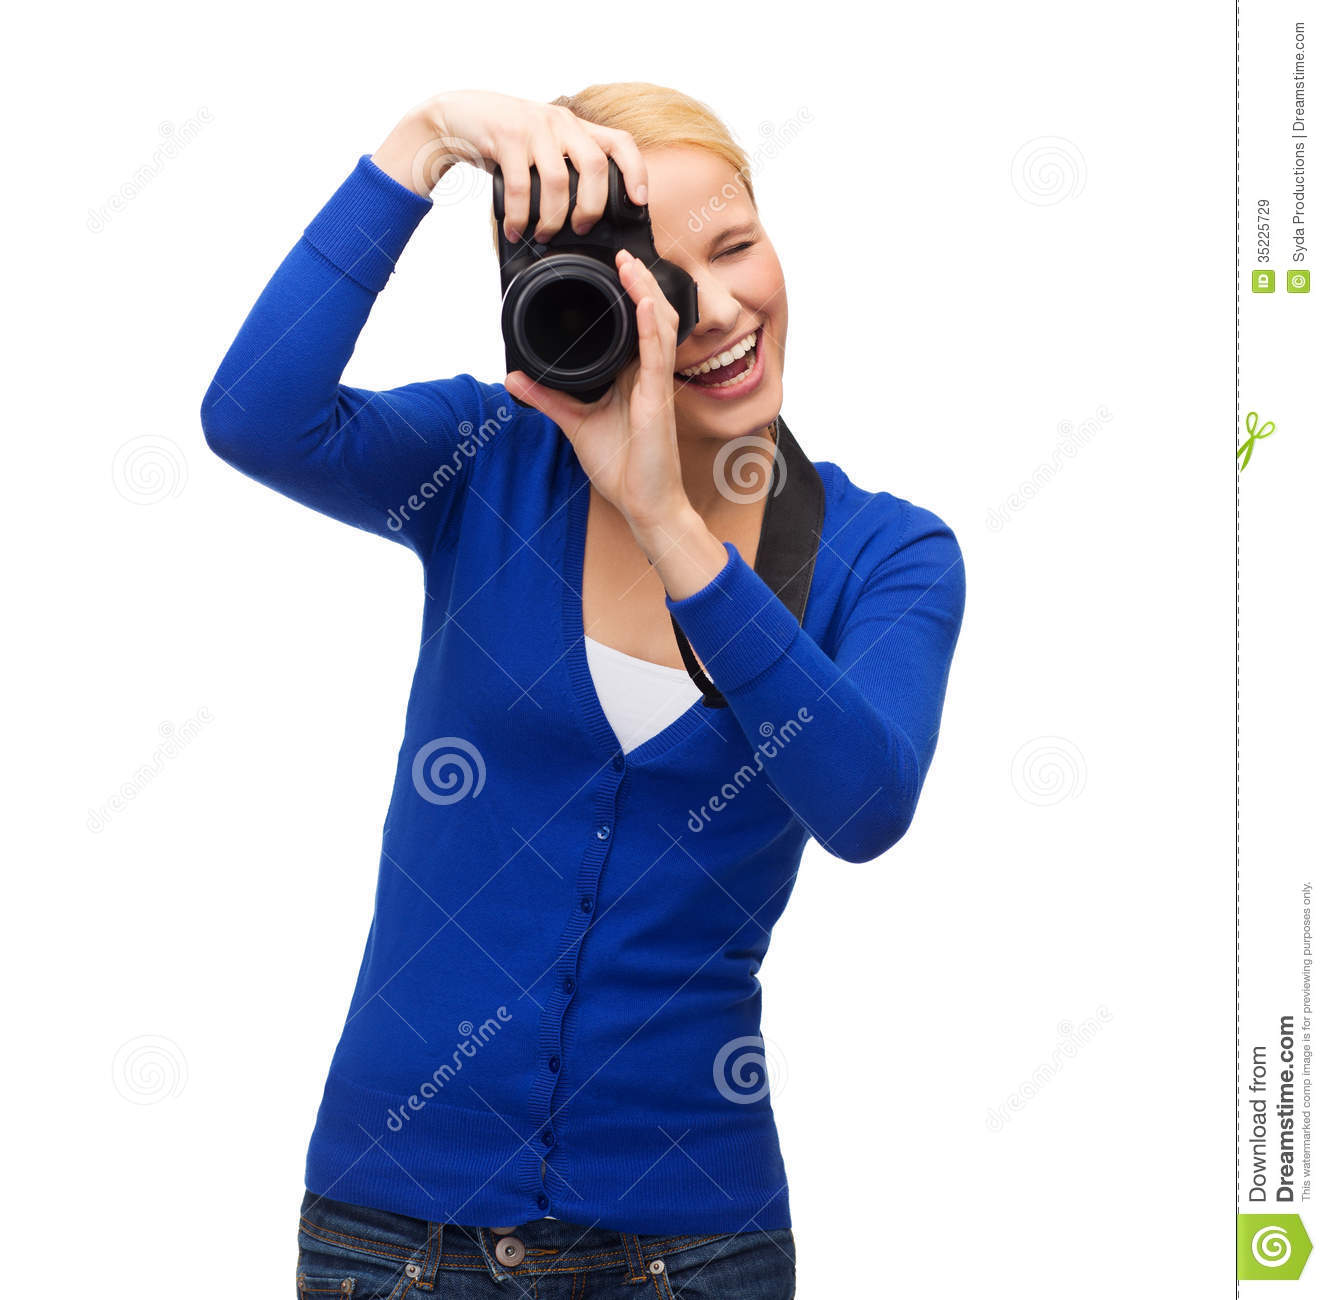 smiling-woman-taking-picture-digital-camera-modern-technology-people ...